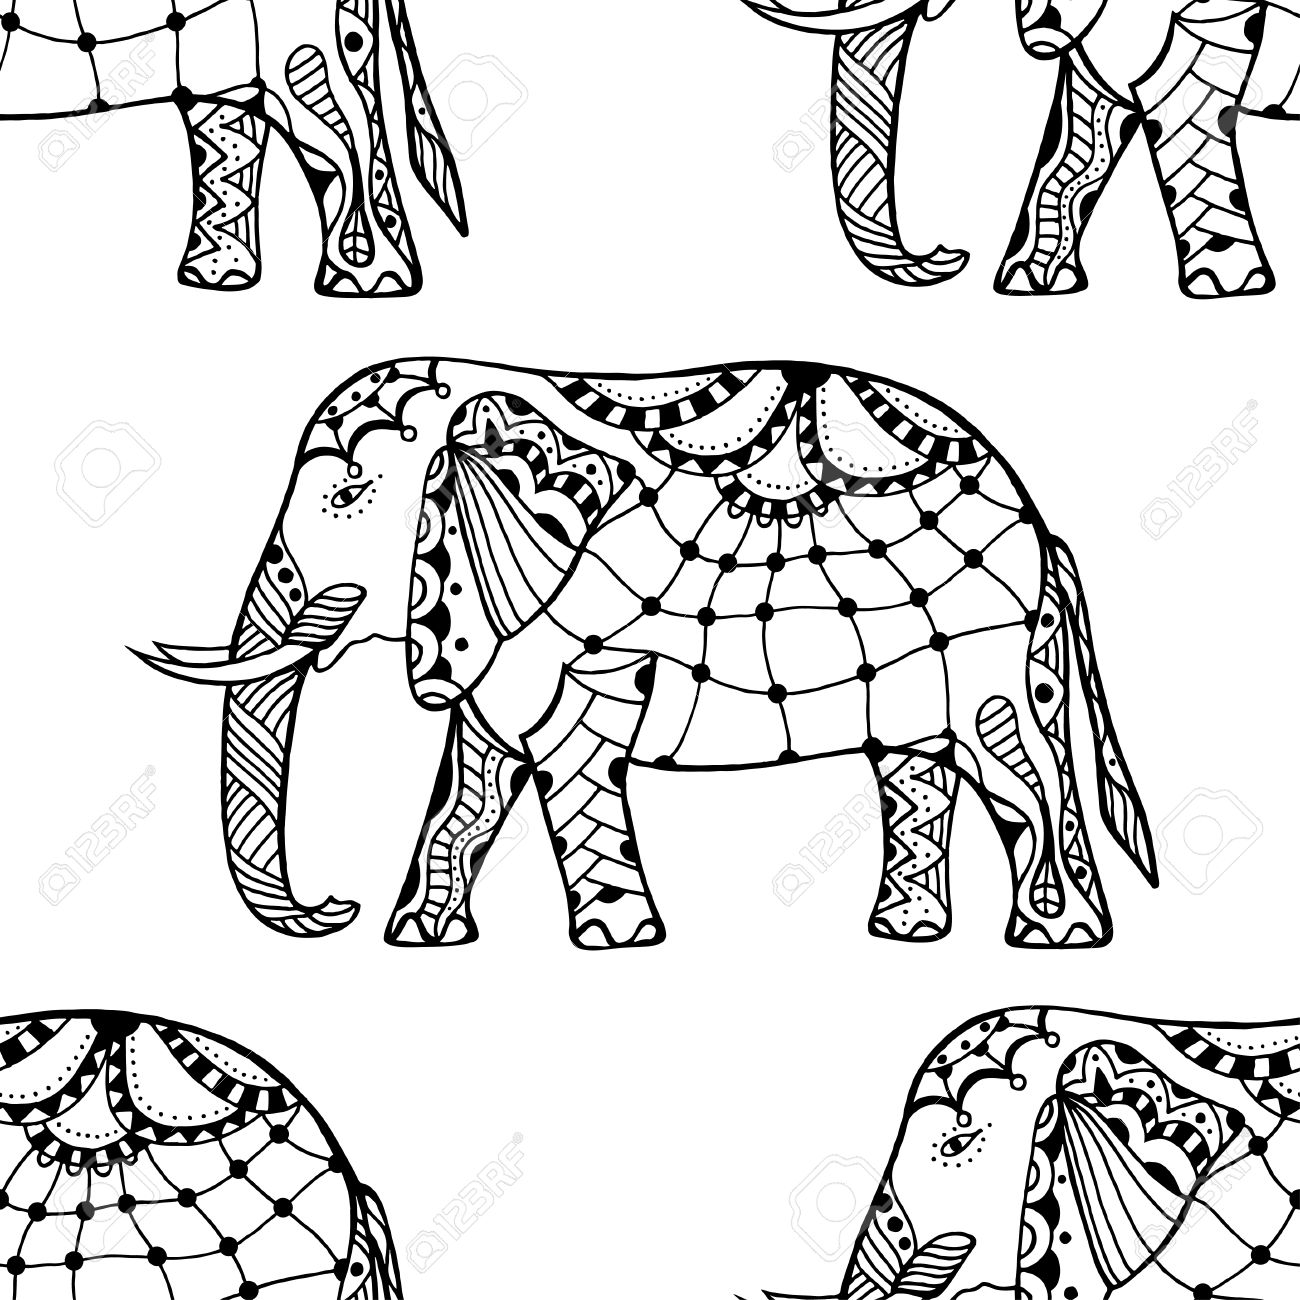 1300x1300 Ethnic Ornate Seamless Pattern With Hand Drawn Elephants And Ohm